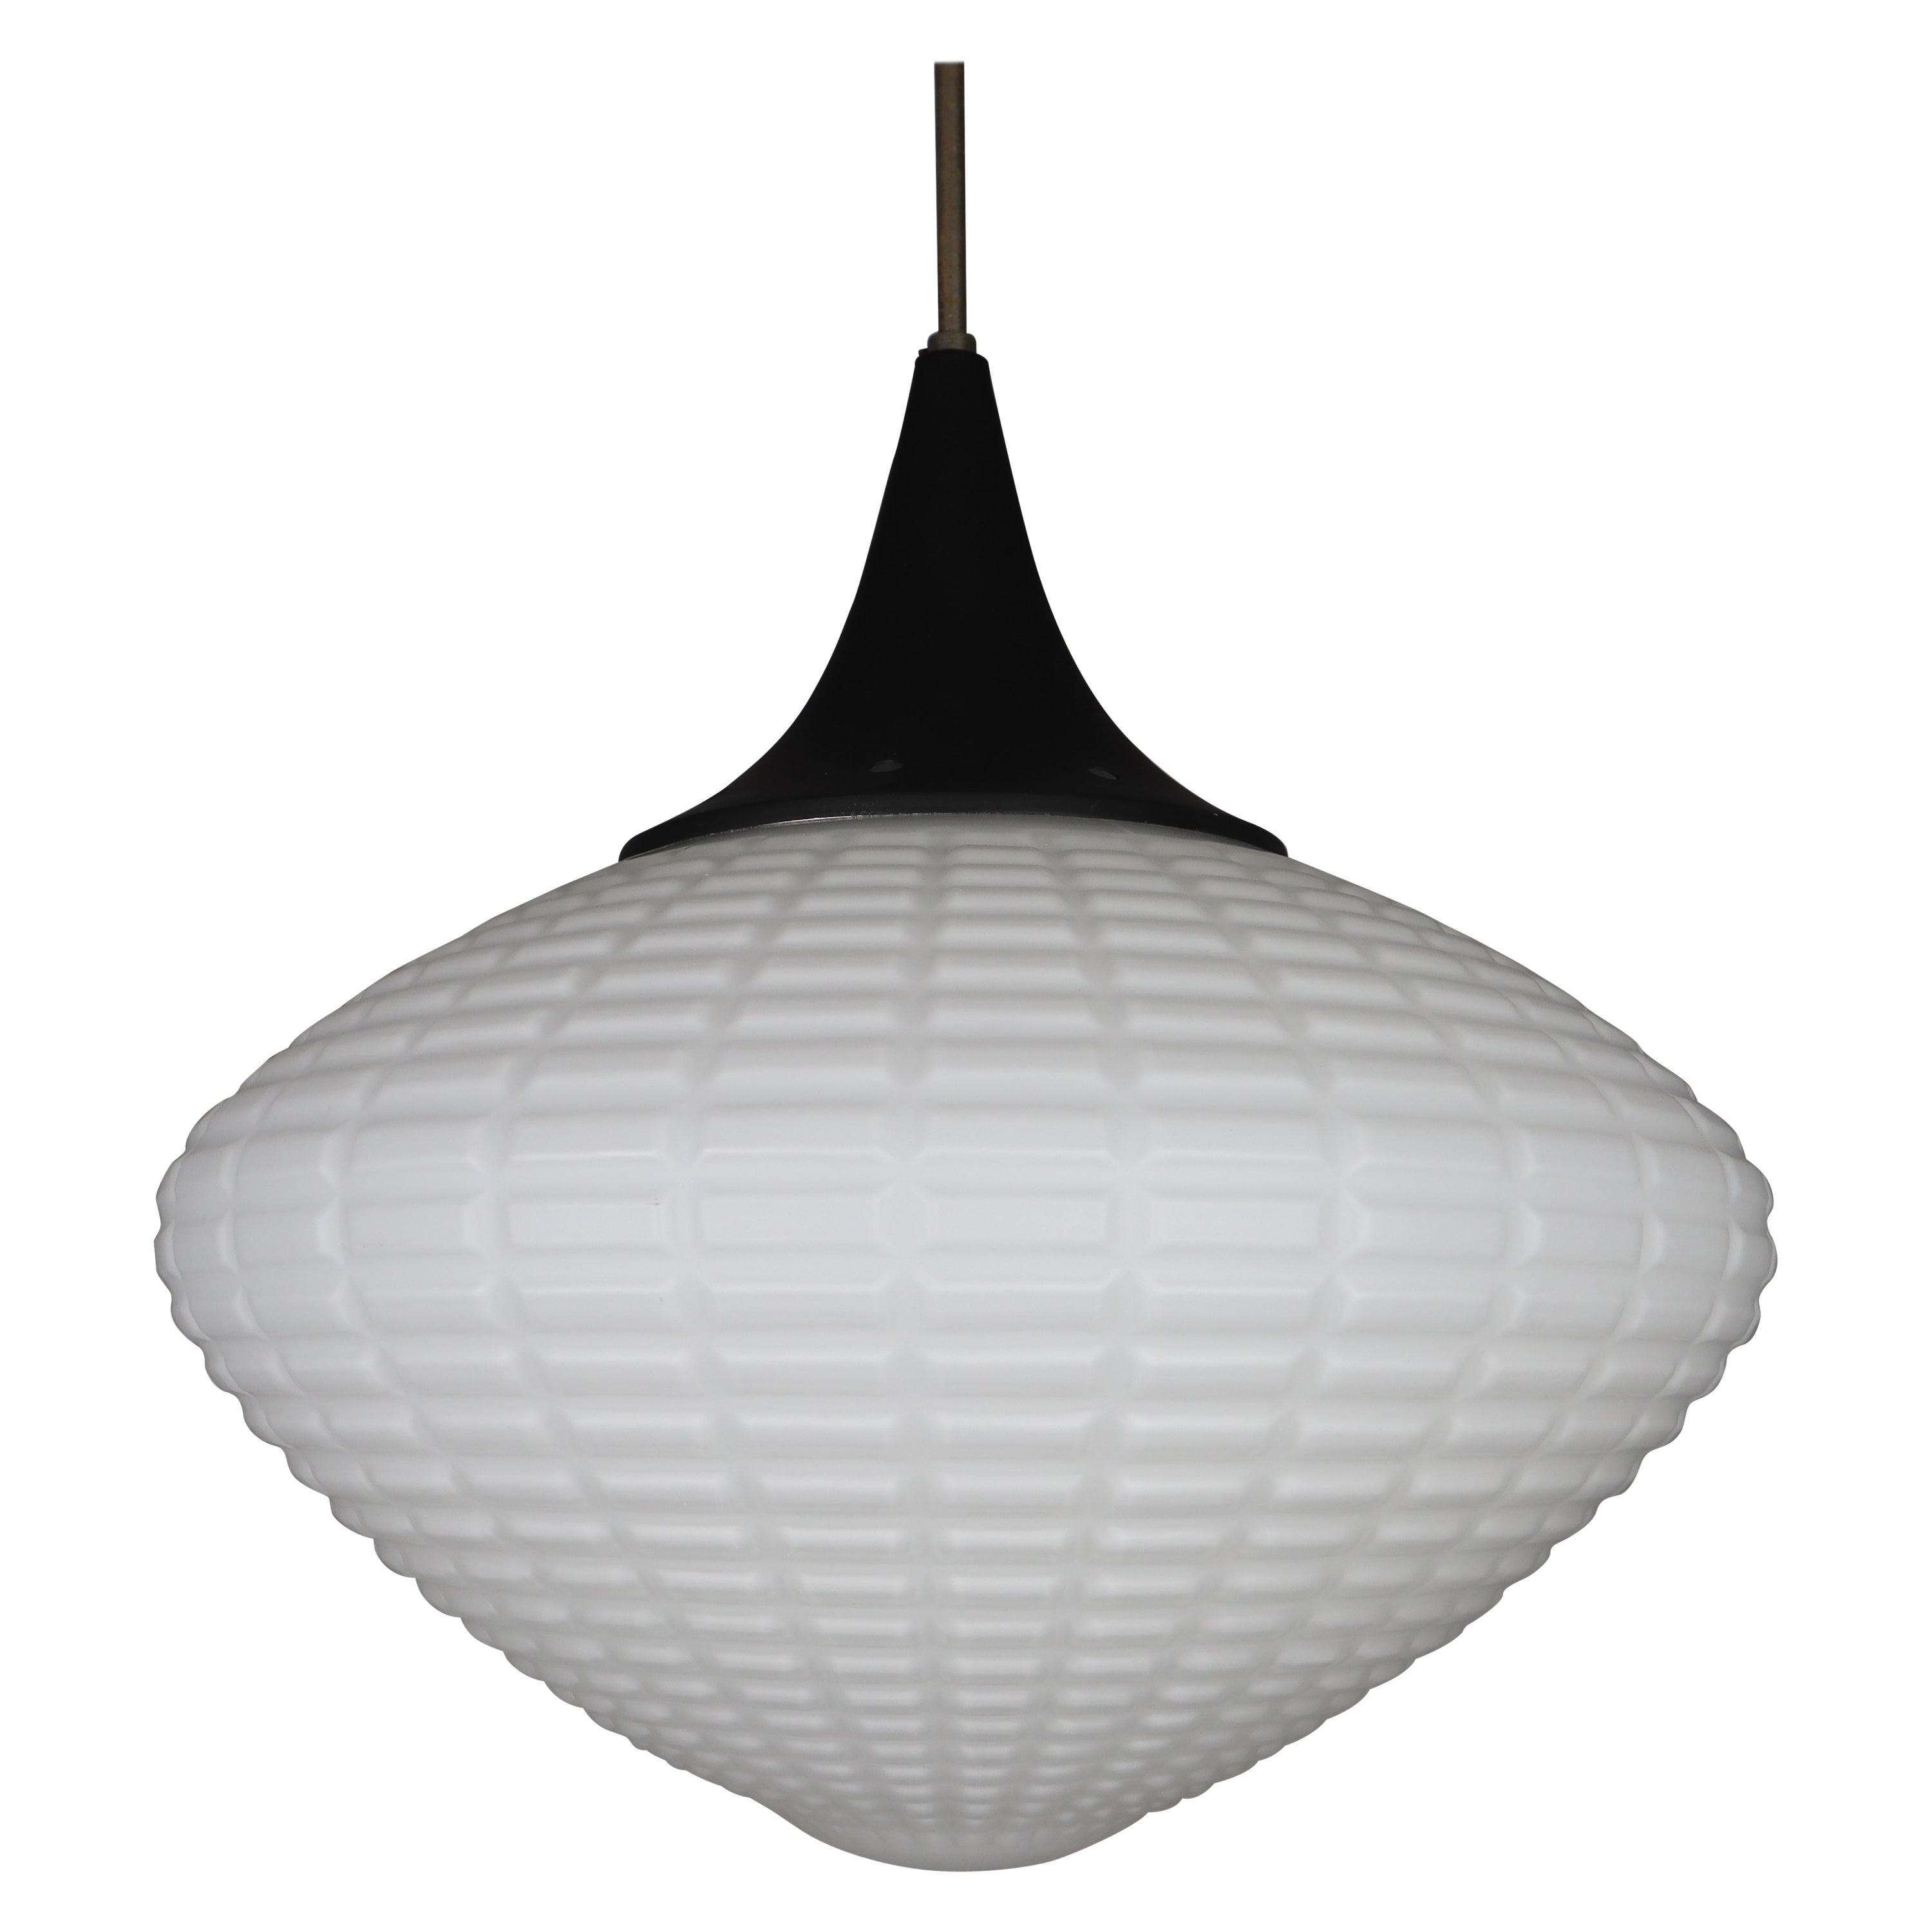 Large Midcentury Pendant, Structured Opaline Glass, Europe, 1960s